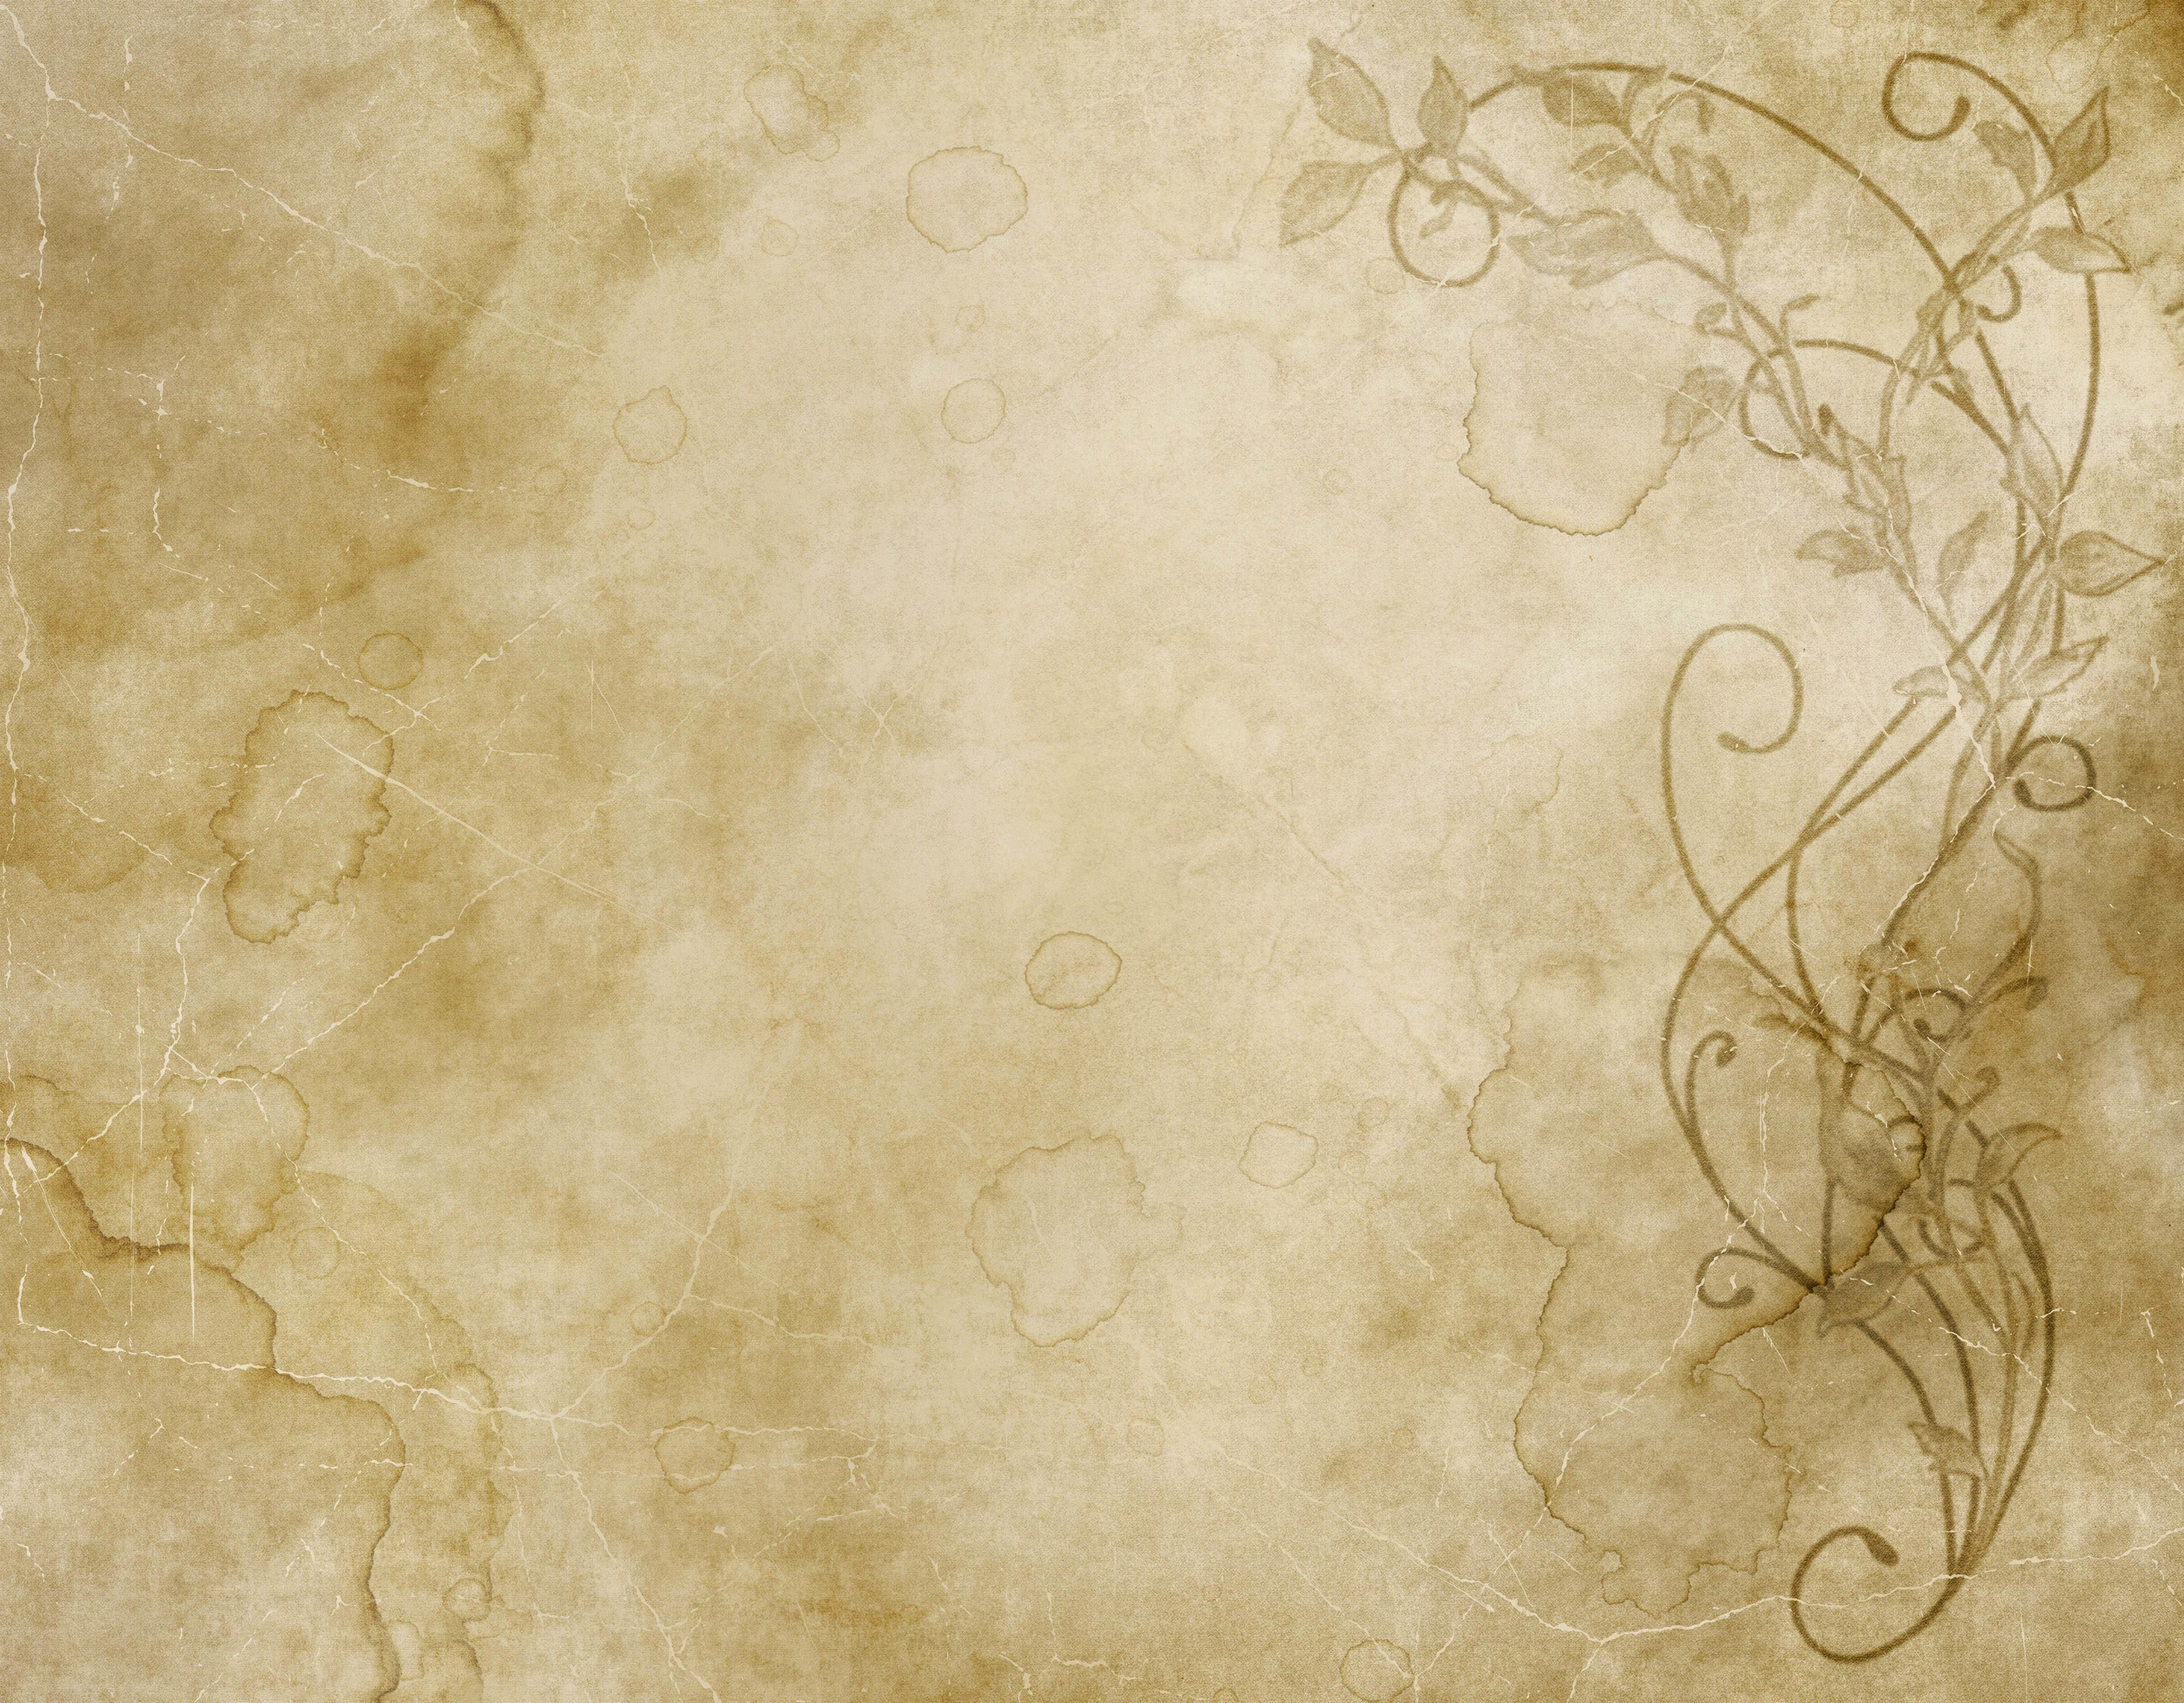 Parchment Textures Freecreatives